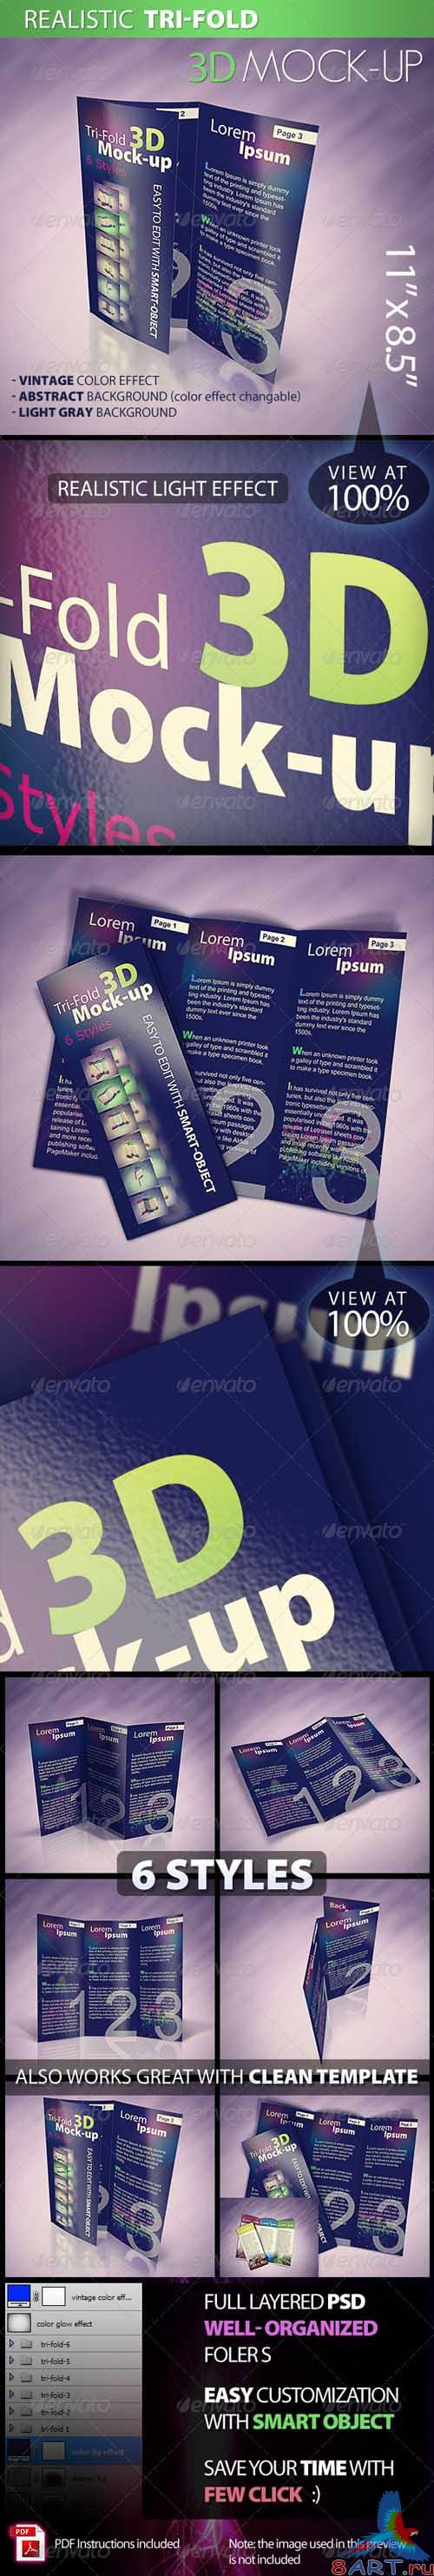 GraphicRiver Tri-fold 3D Mock-up Pack - REUPLOAD